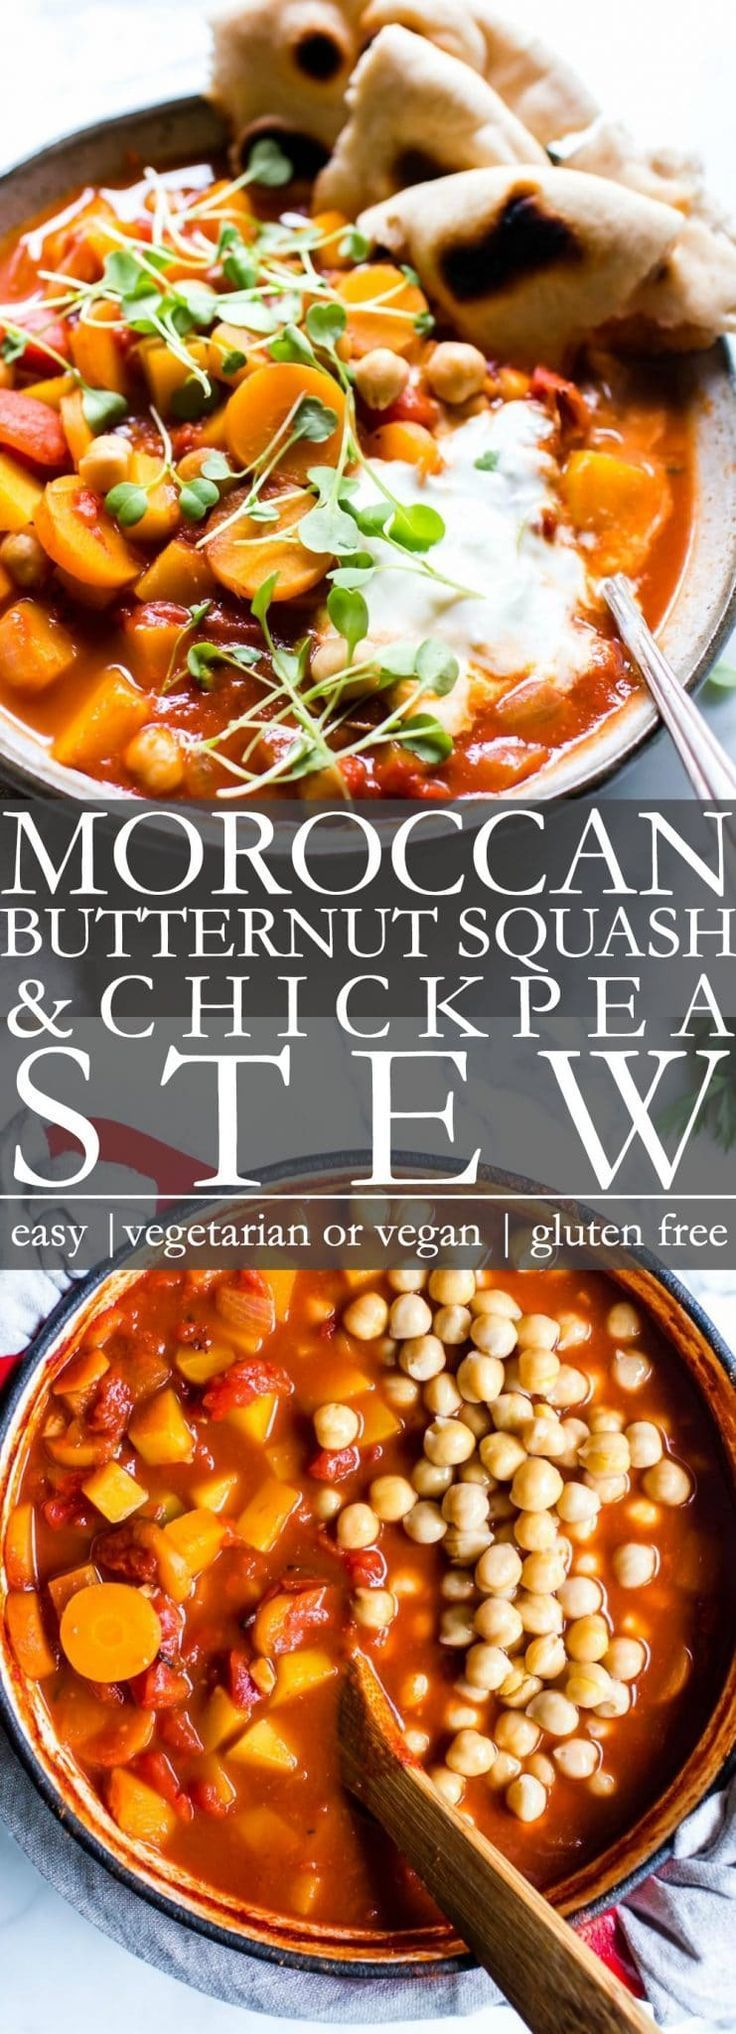 Moroccan Butternut Squash Chickpea Stew | Vanilla And Bean